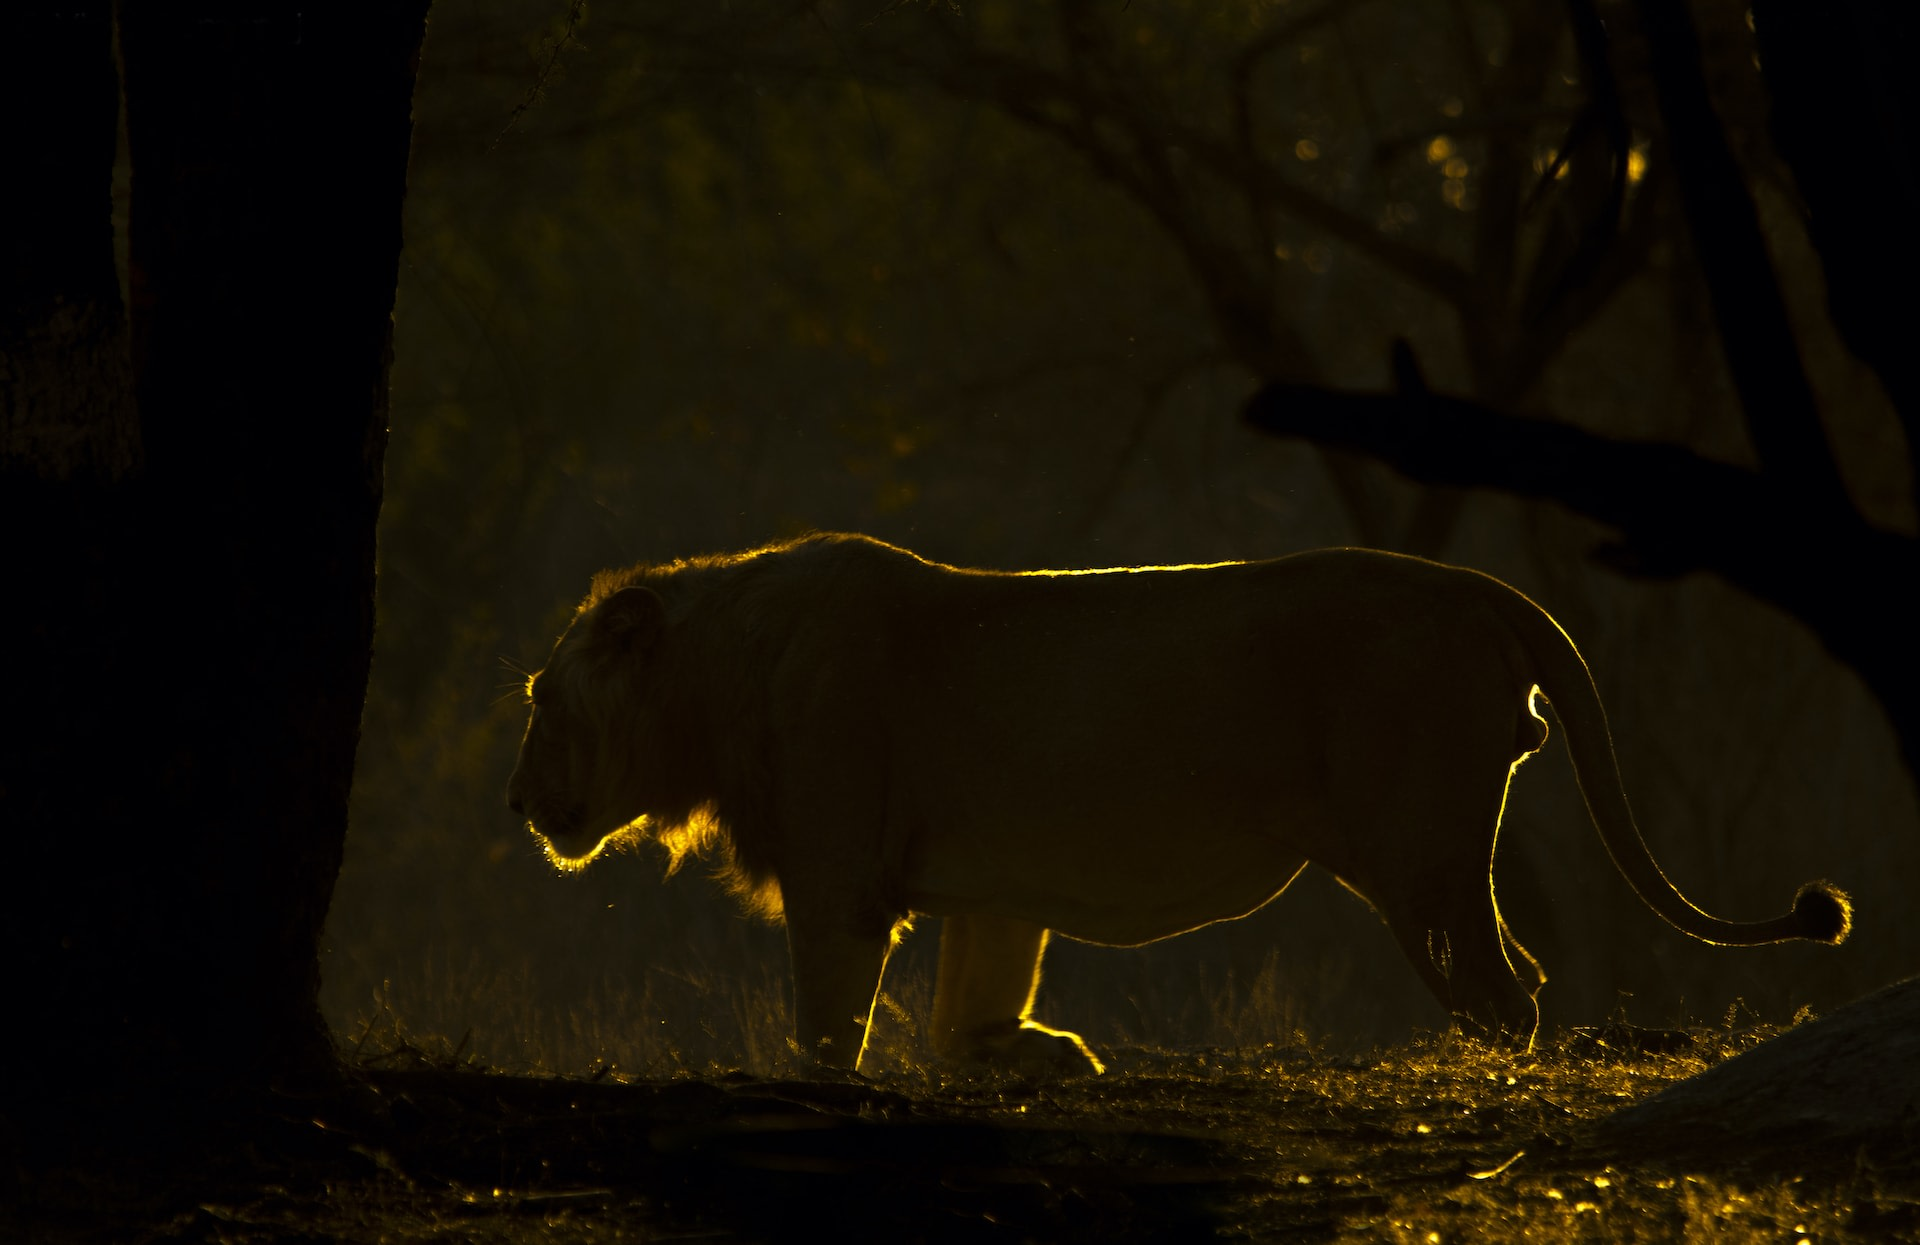 Single lions don't stand a chance against bands of two or more males. Photo: Vipul Ramanuj  Cover Photo: Forming masculine partnerships is crucial to lion survival in Gir National Park. Cover Photo: Peter Theobald